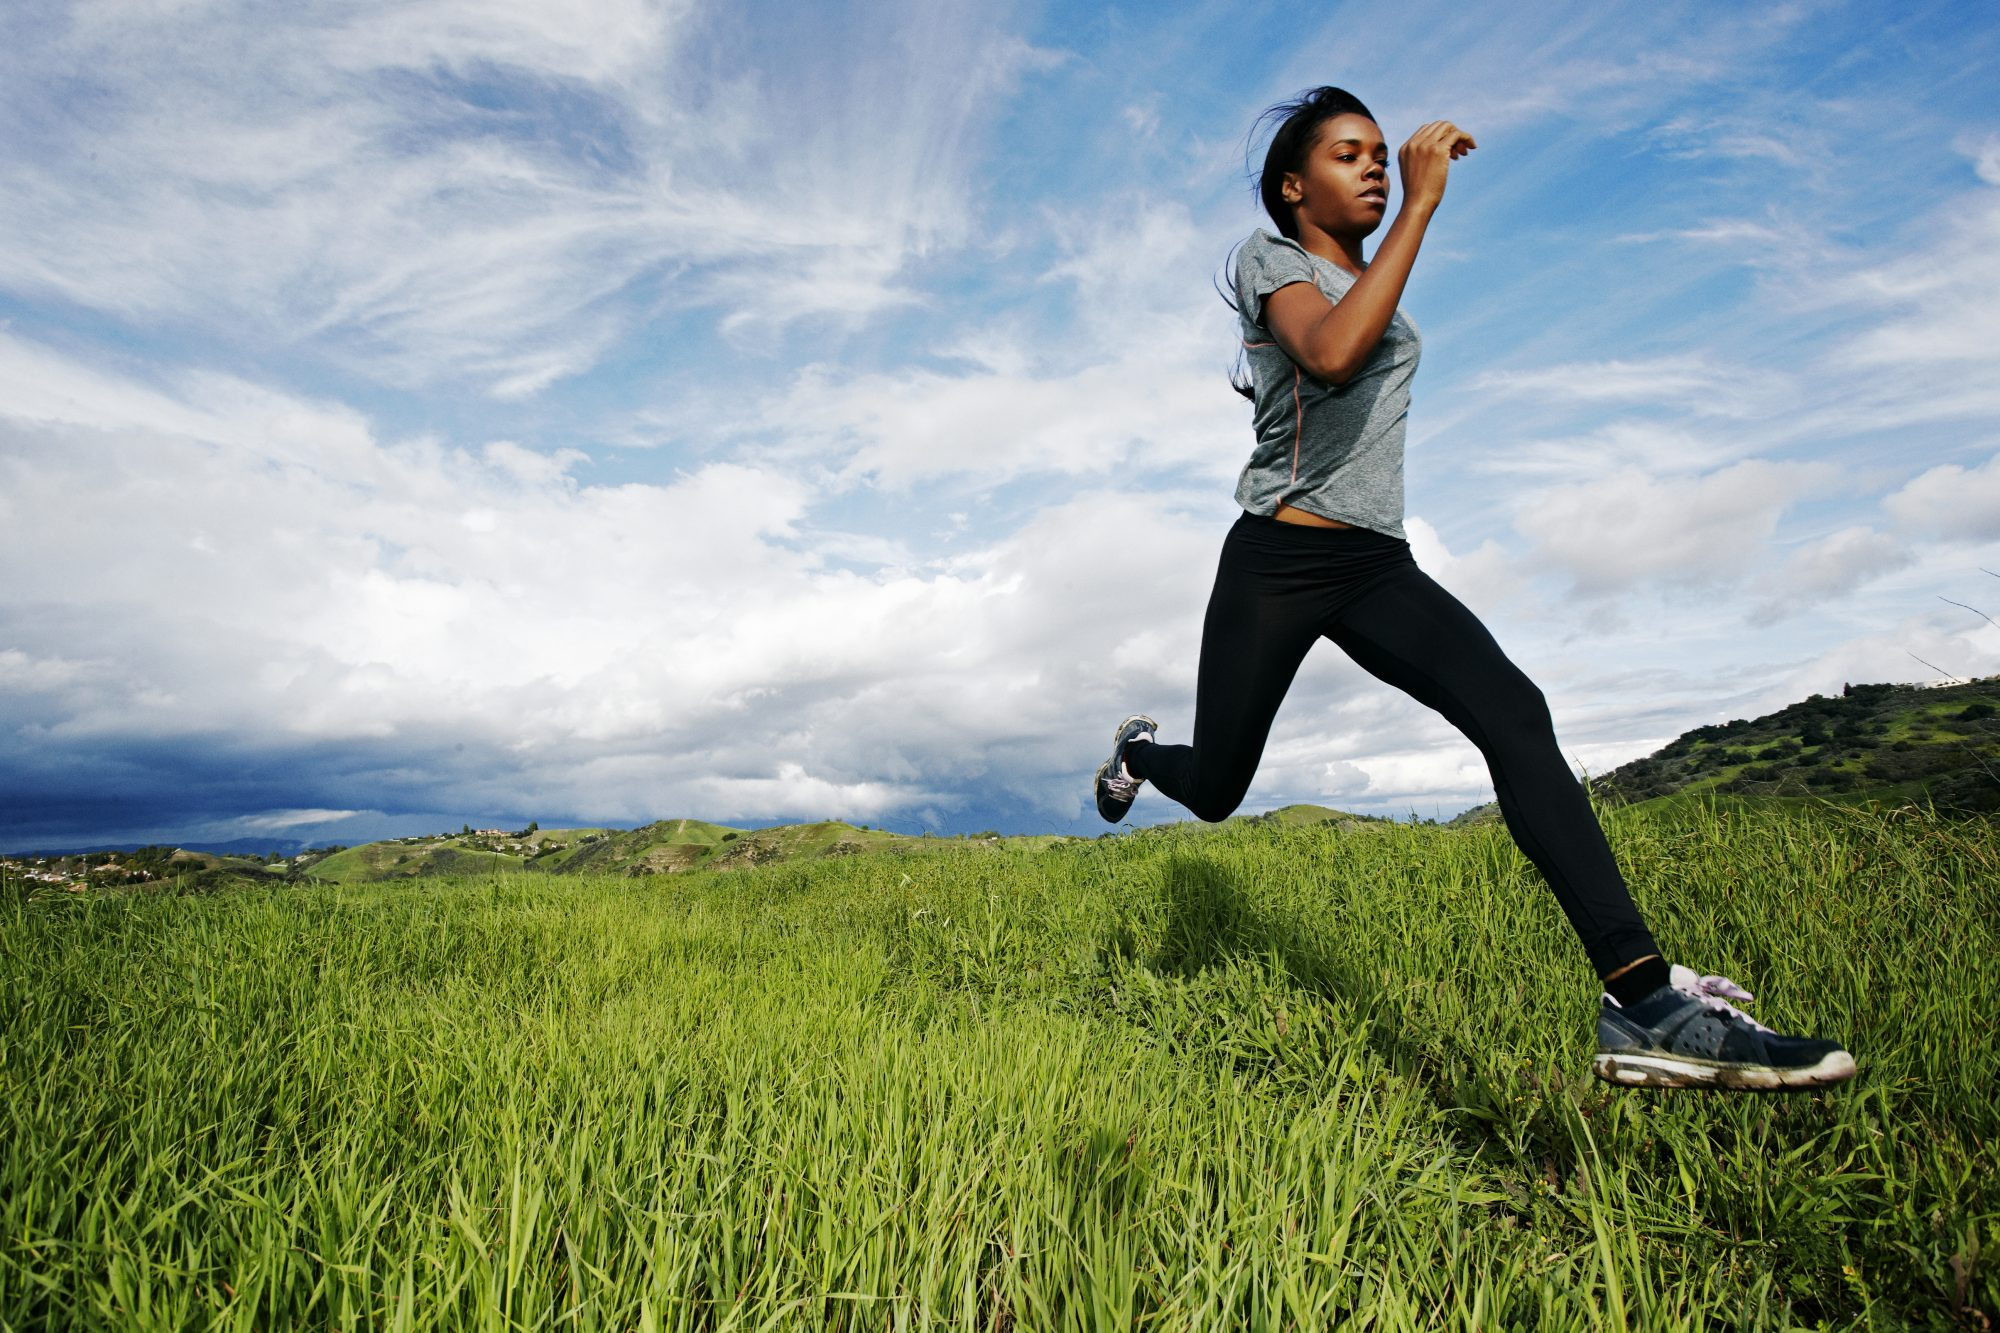 Mindful Running tips - how to practice mindful running: woman running in a grassy field